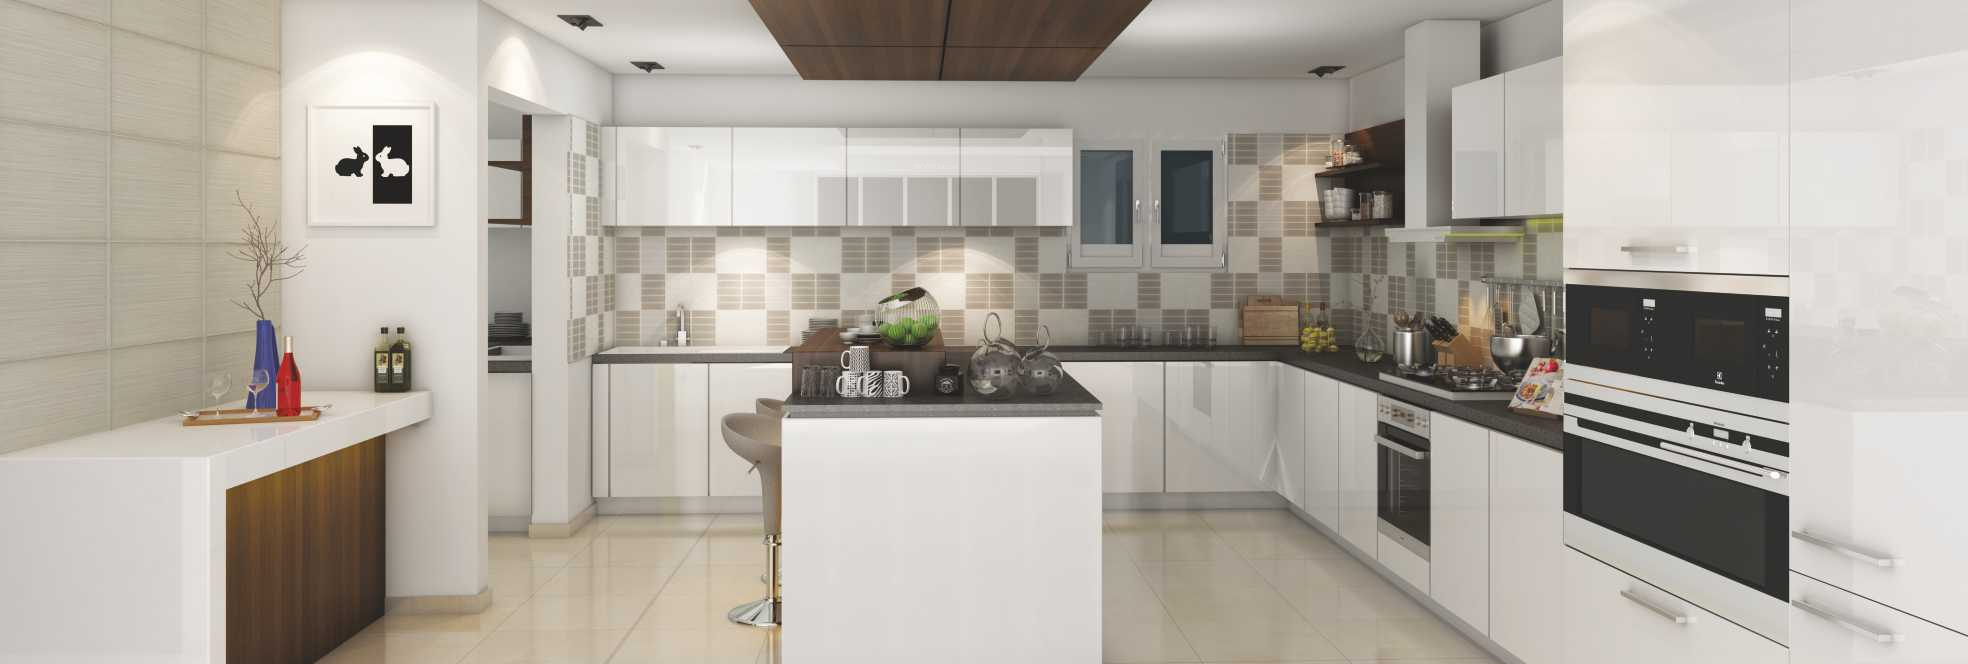 Vajram tiara in yelahanka bangalore price location map for Kitchen 6 yelahanka